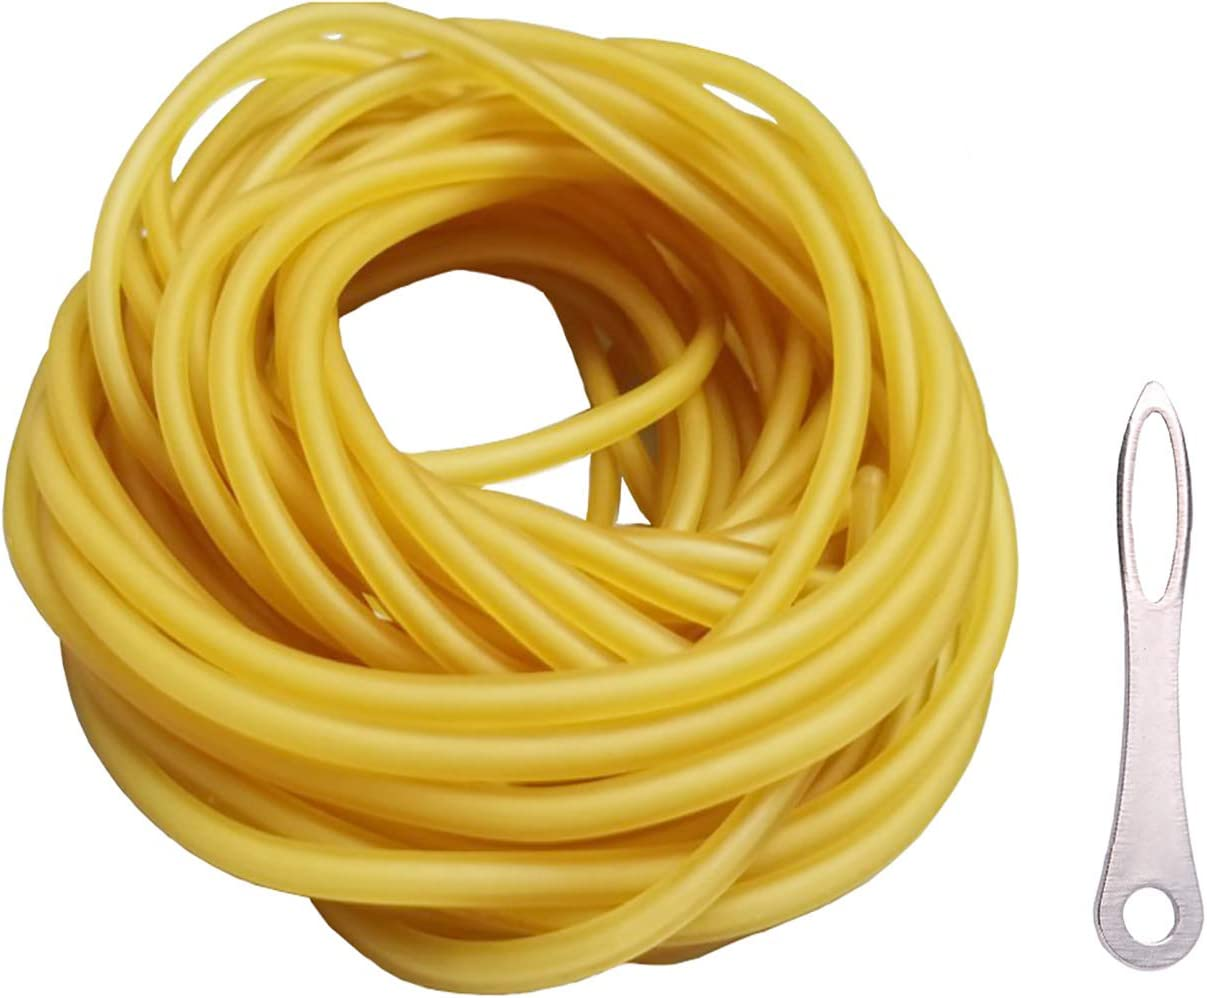 Schleuder Outlet ☆ Free Shipping Slingshot Rubber Bands Tubing Catapult 10m Replacemen Large discharge sale